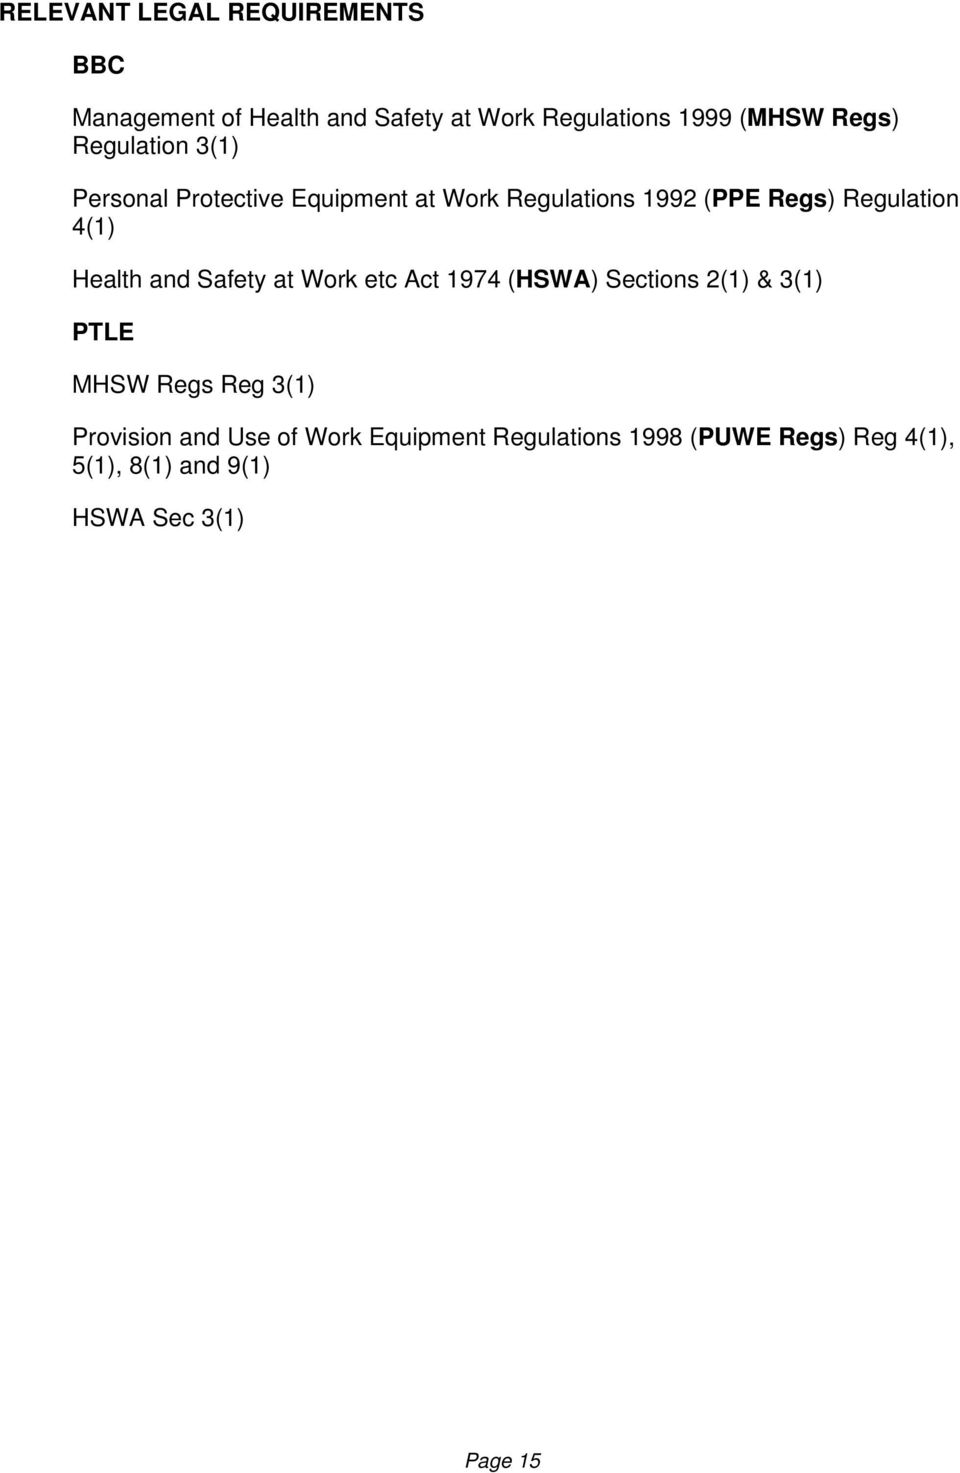 Health and Safety at Work etc Act 1974 (HSWA) Sections 2(1) & 3(1) PTLE MHSW Regs Reg 3(1) Provision